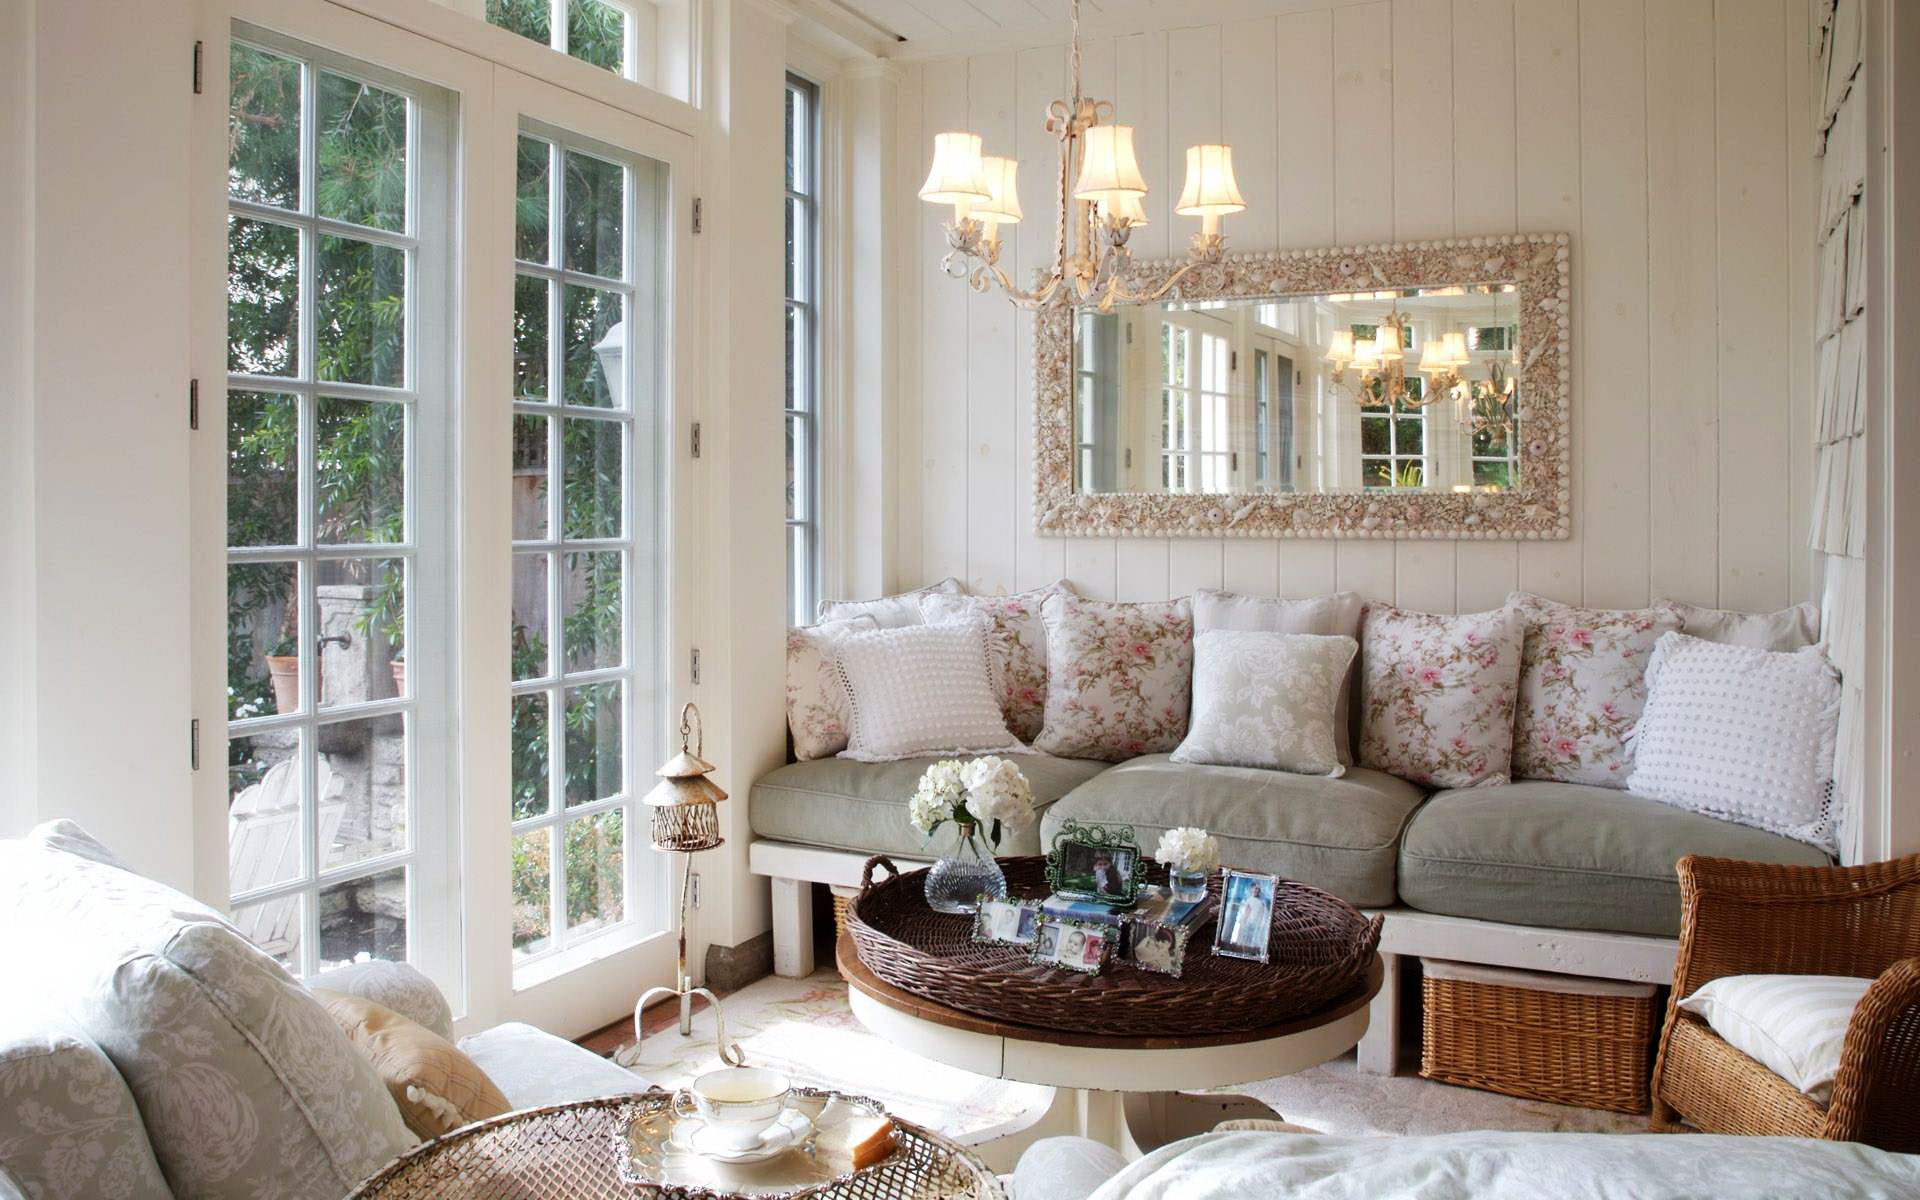 Great home interior tea room fully furnished stylish home designs